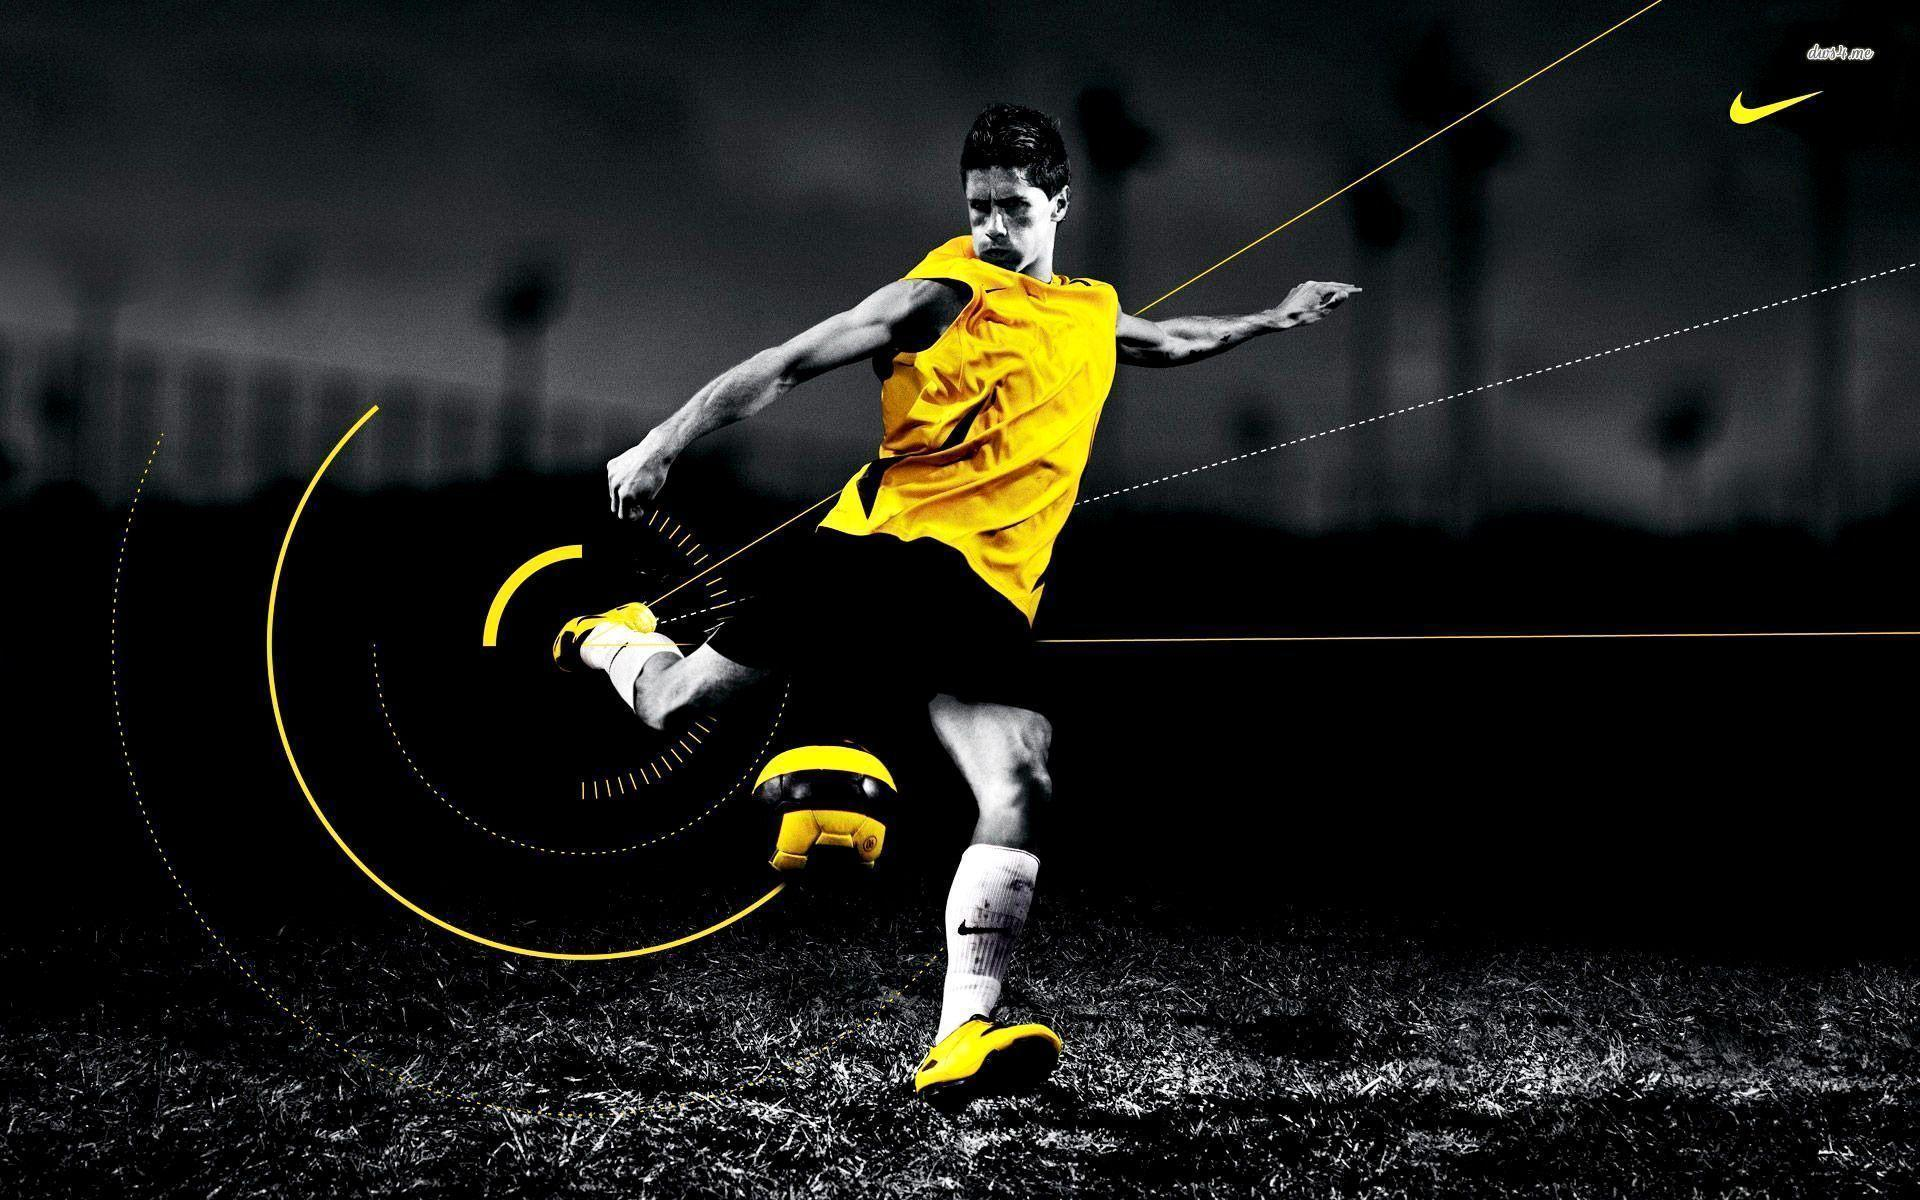 1920x1200 - Sports Wallpapers 18